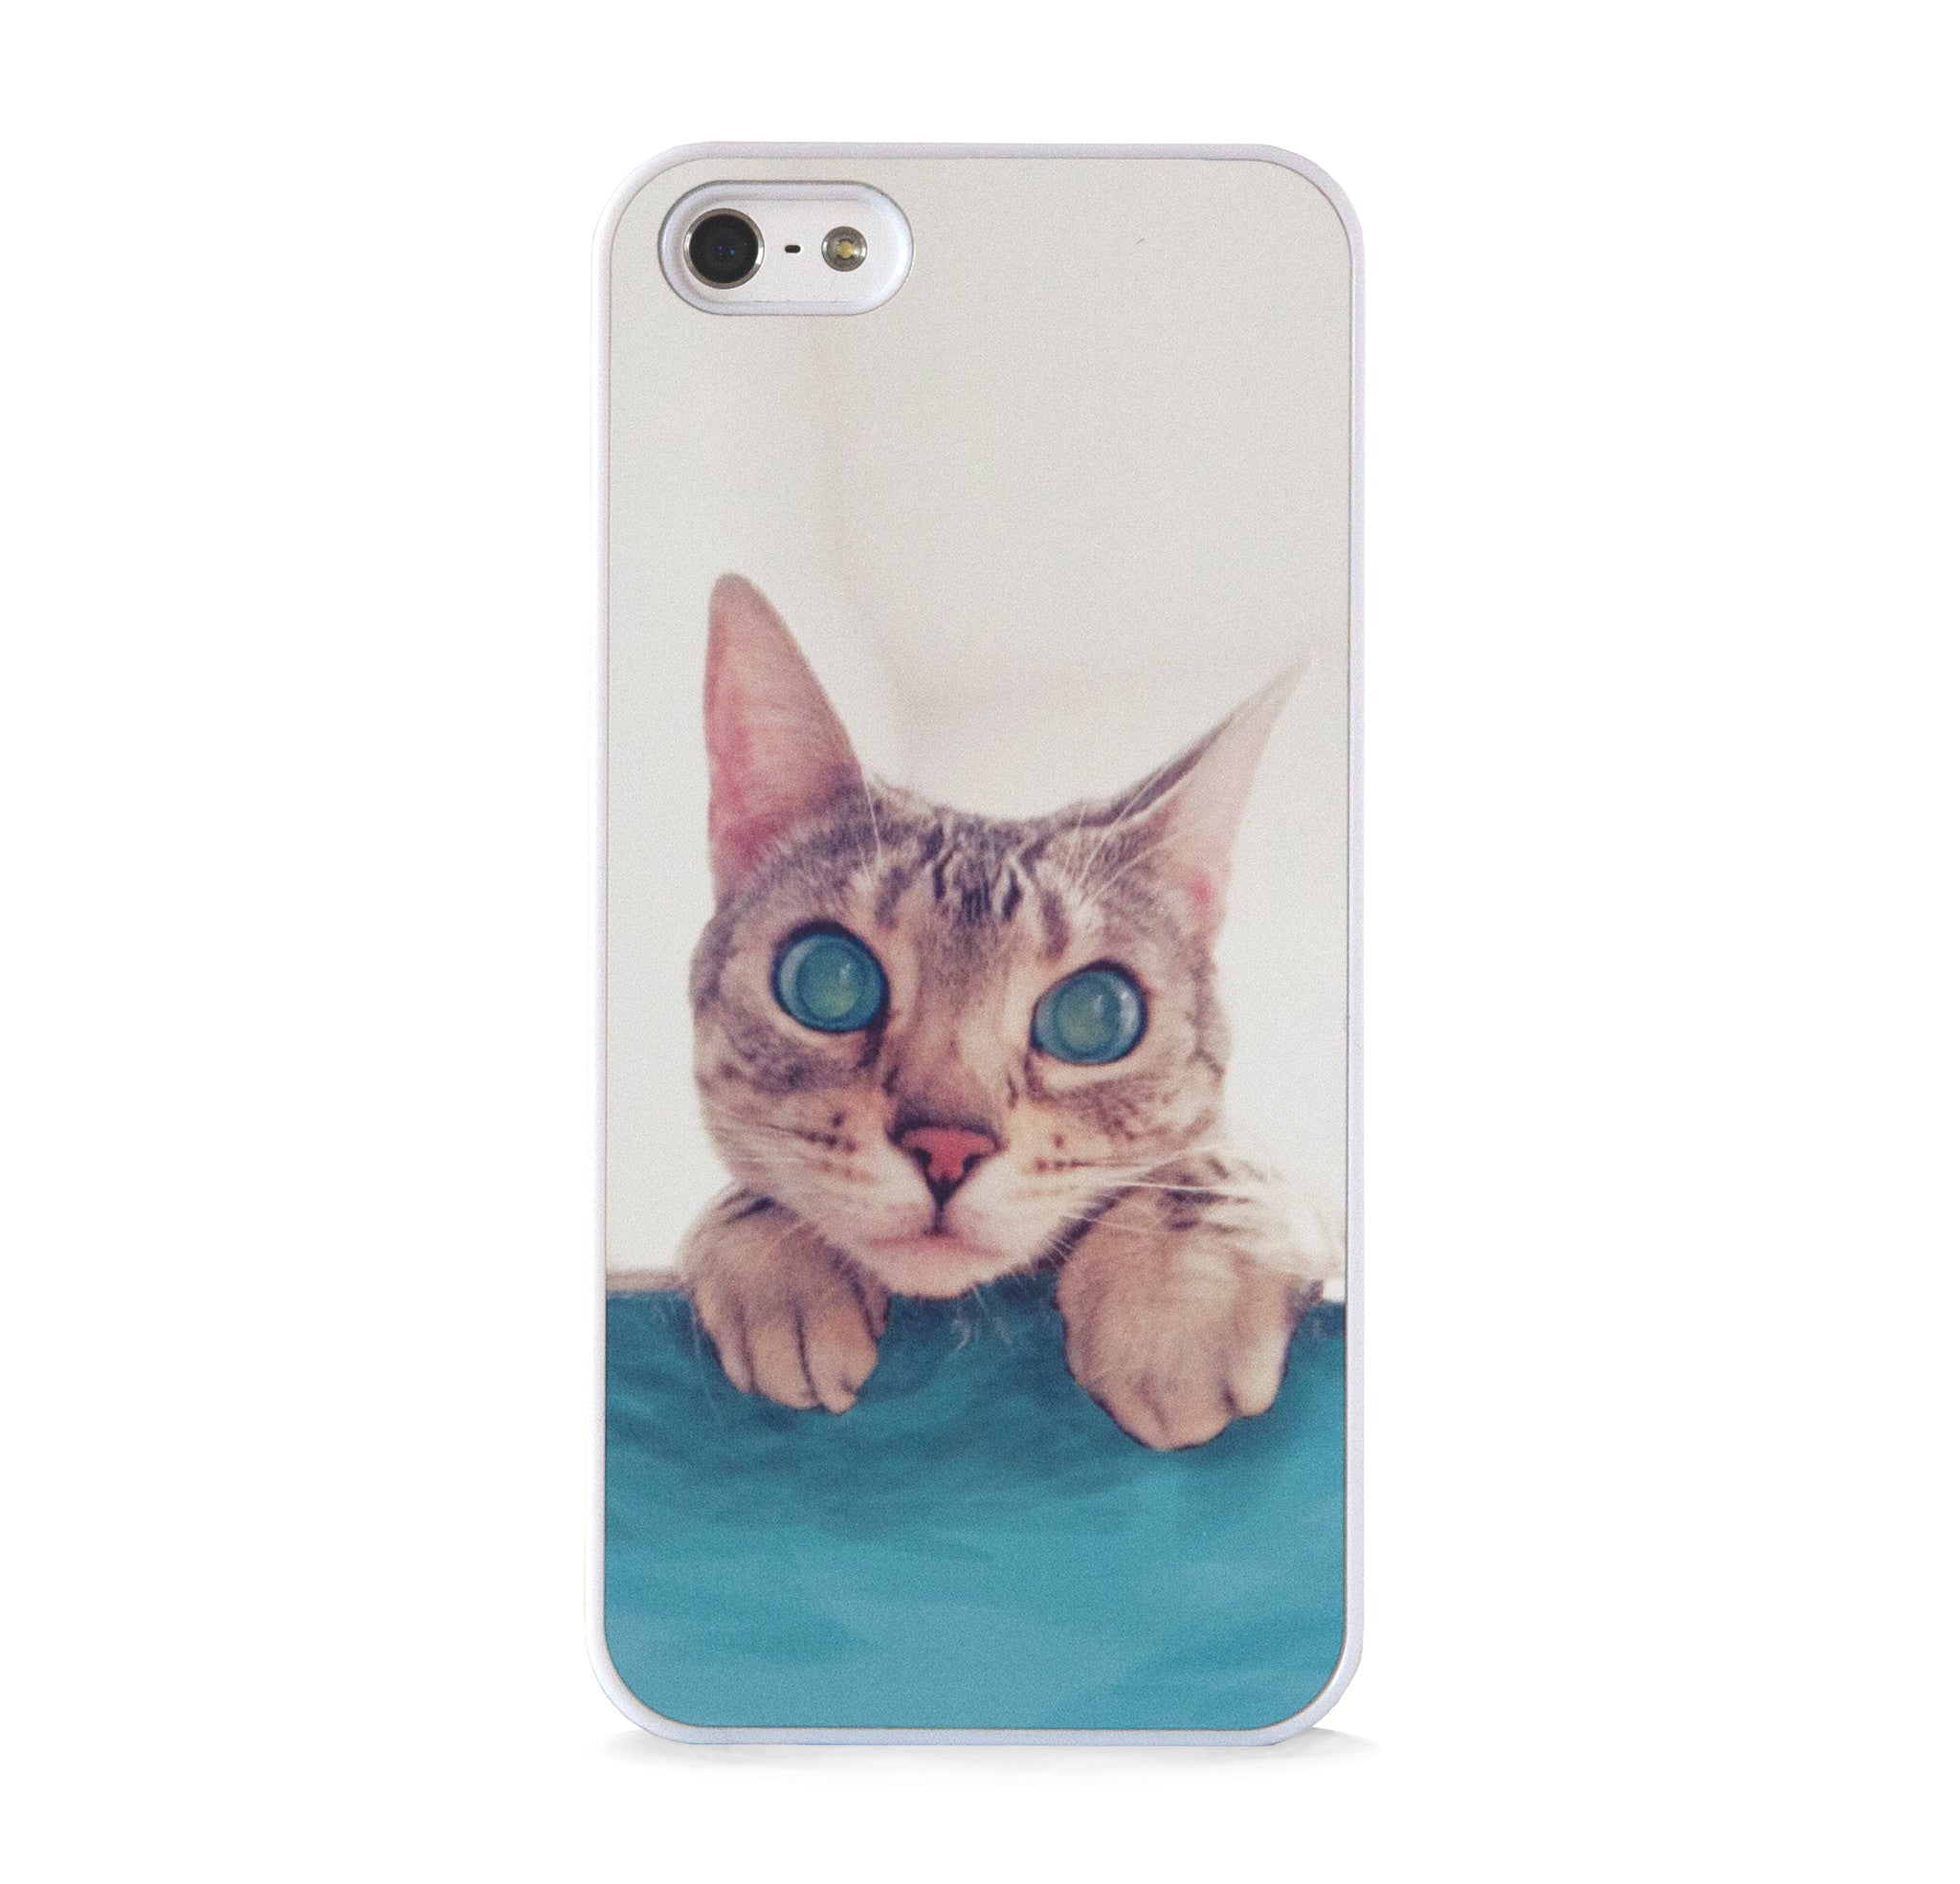 CUTE CAT MINT FOR IPHONE 5/5S